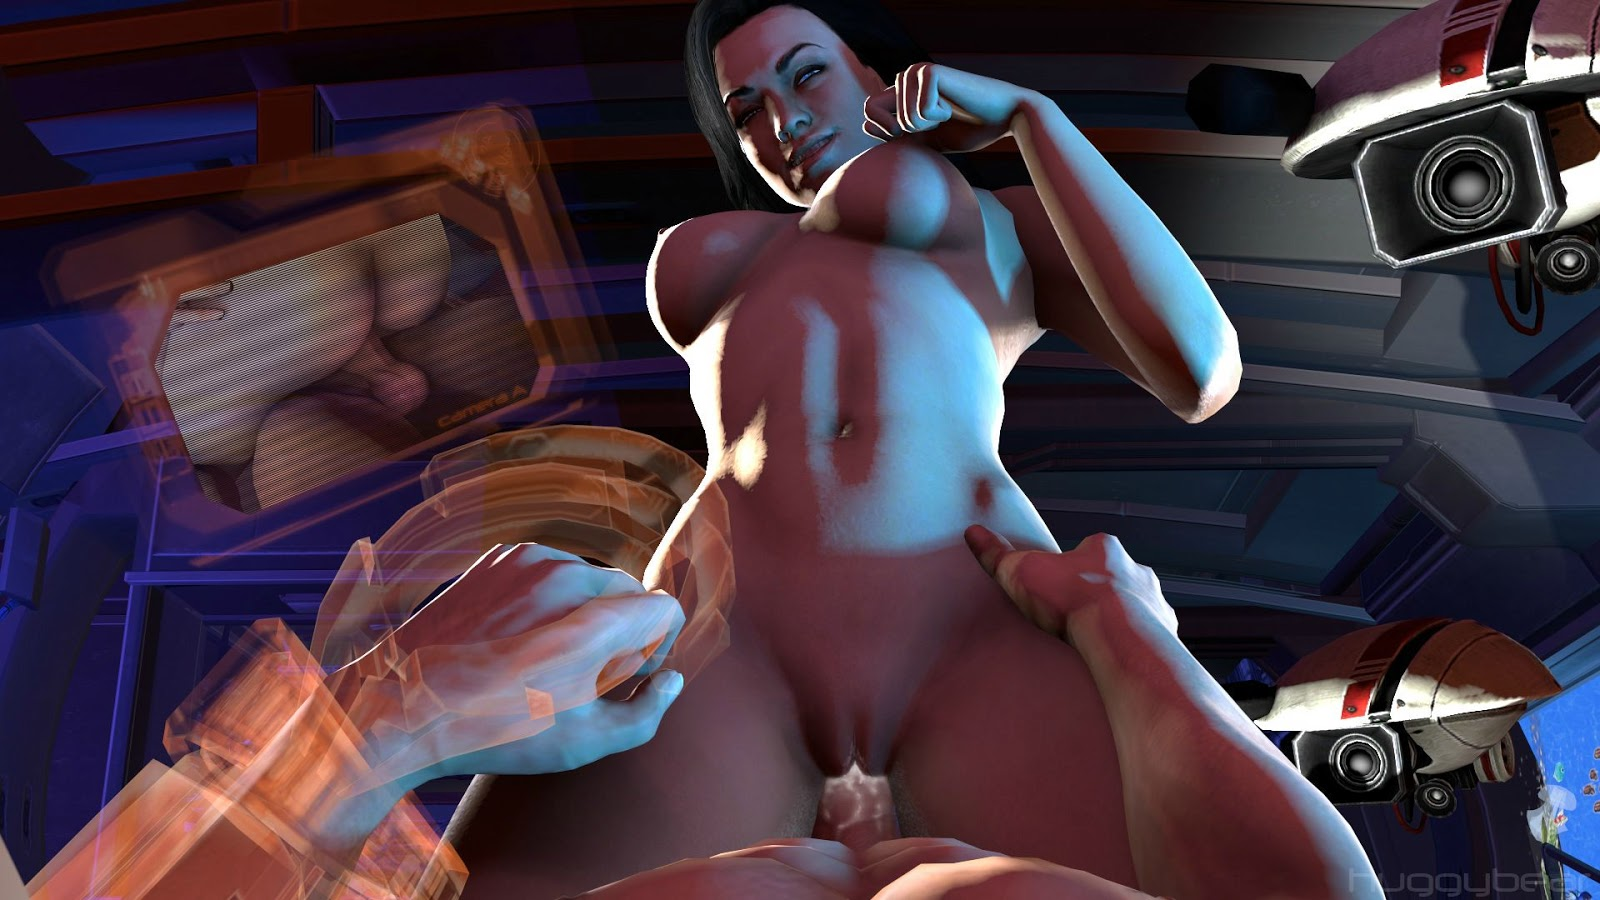 Hentai games mass effect erotic scenes